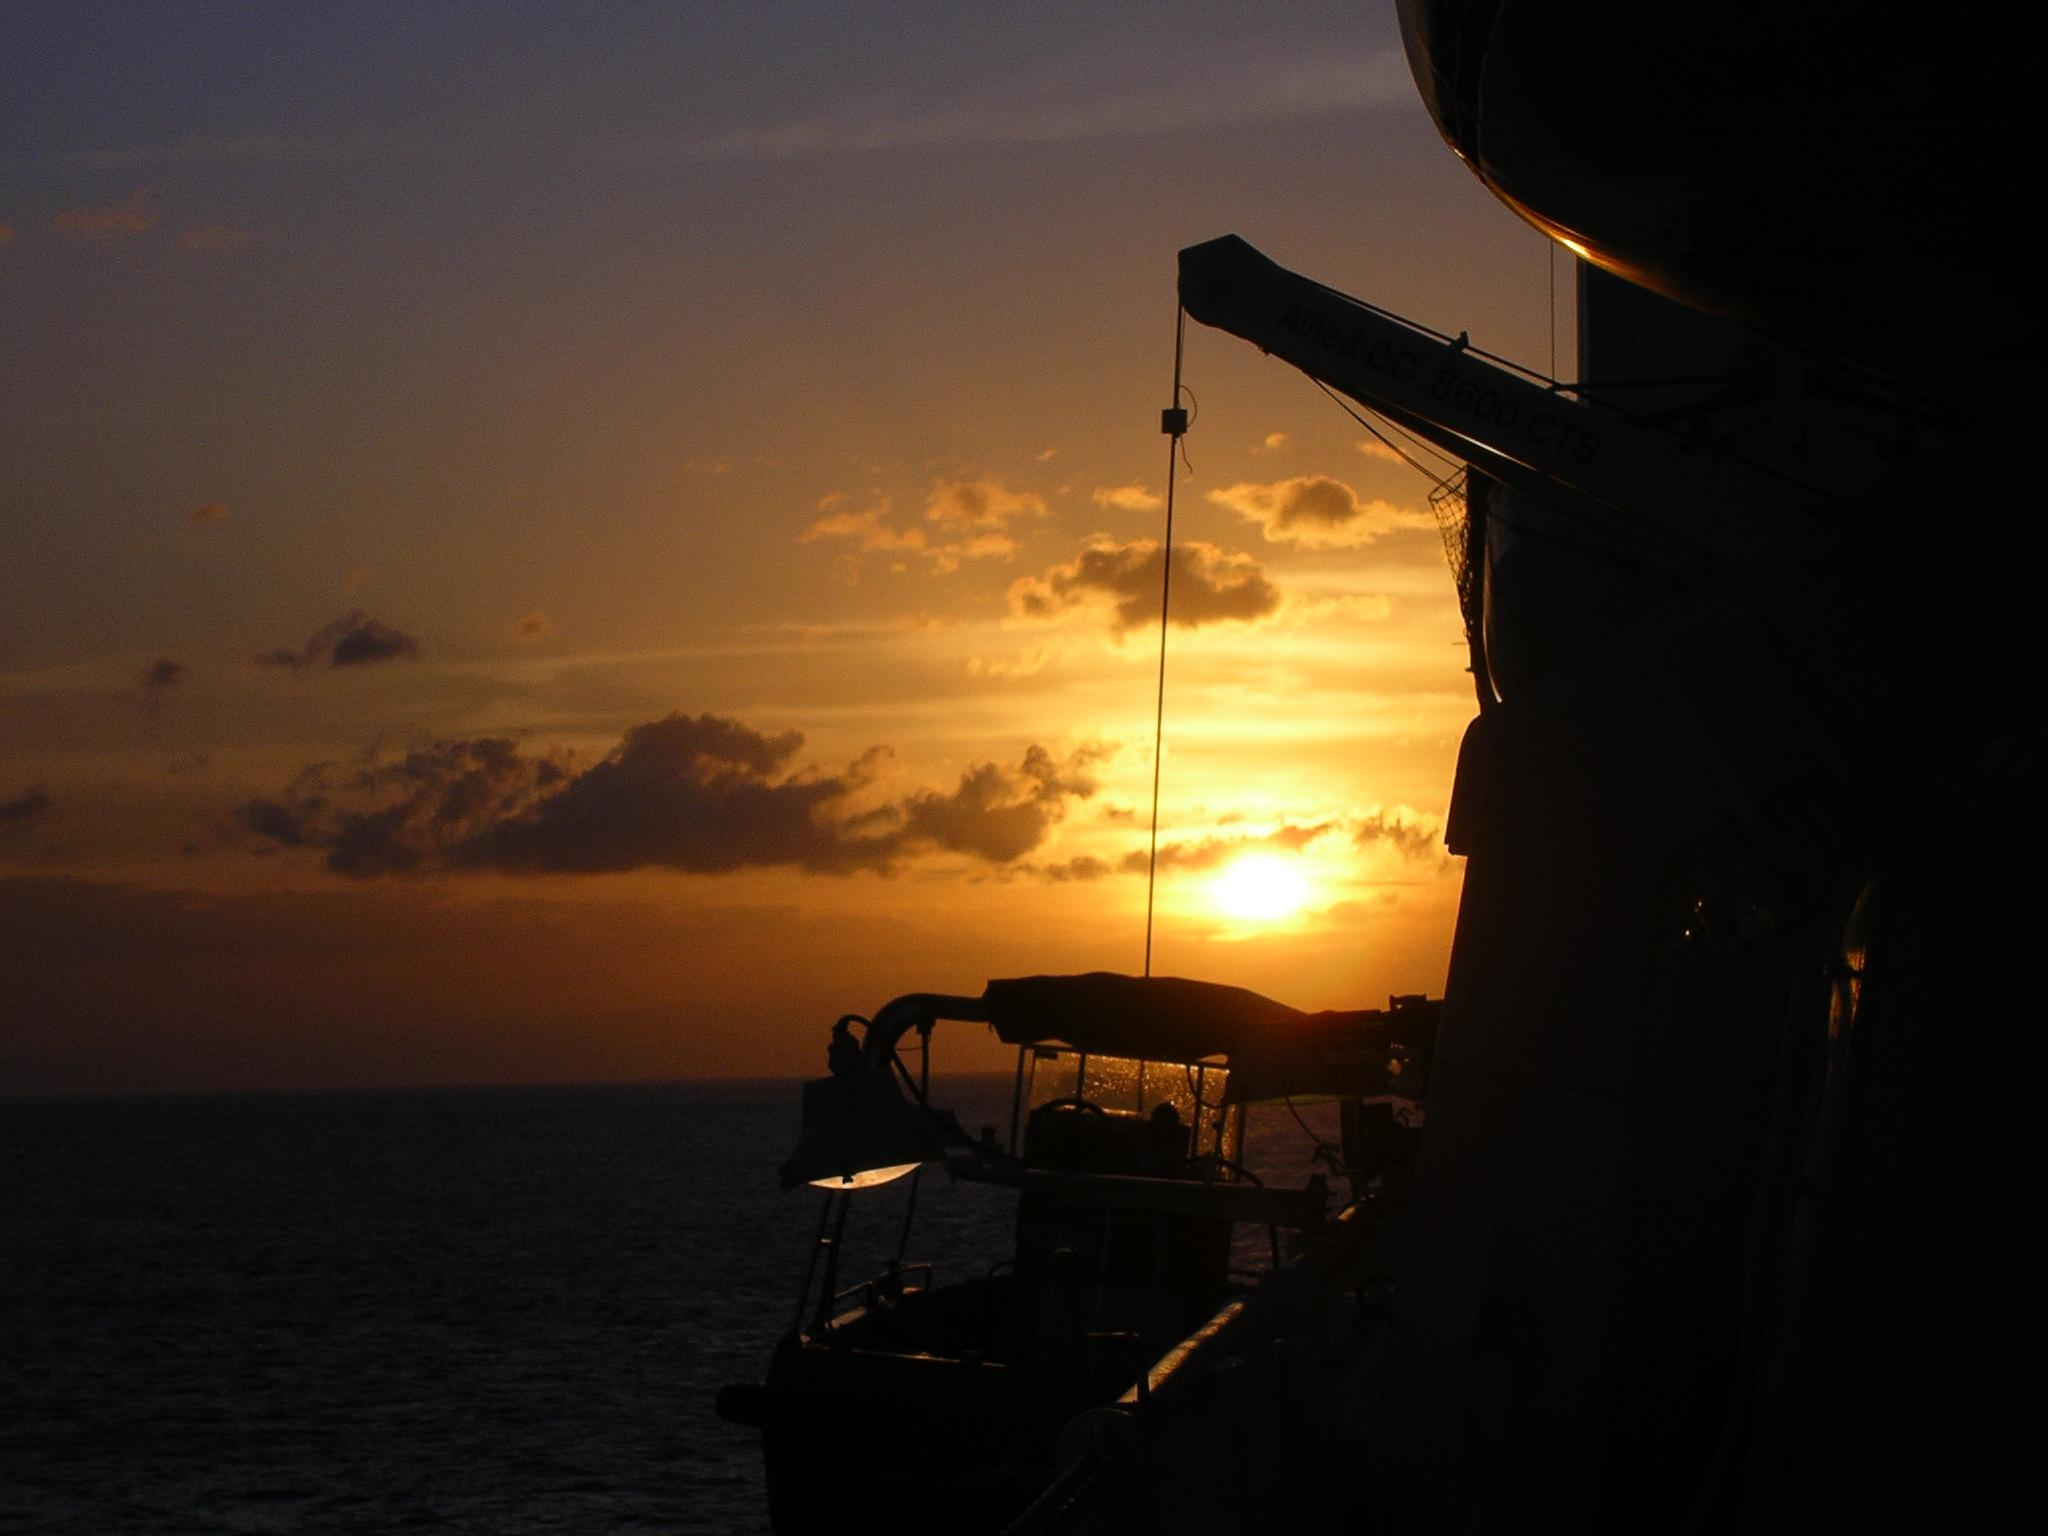 Sunset in the South China Sea by deanna.polk